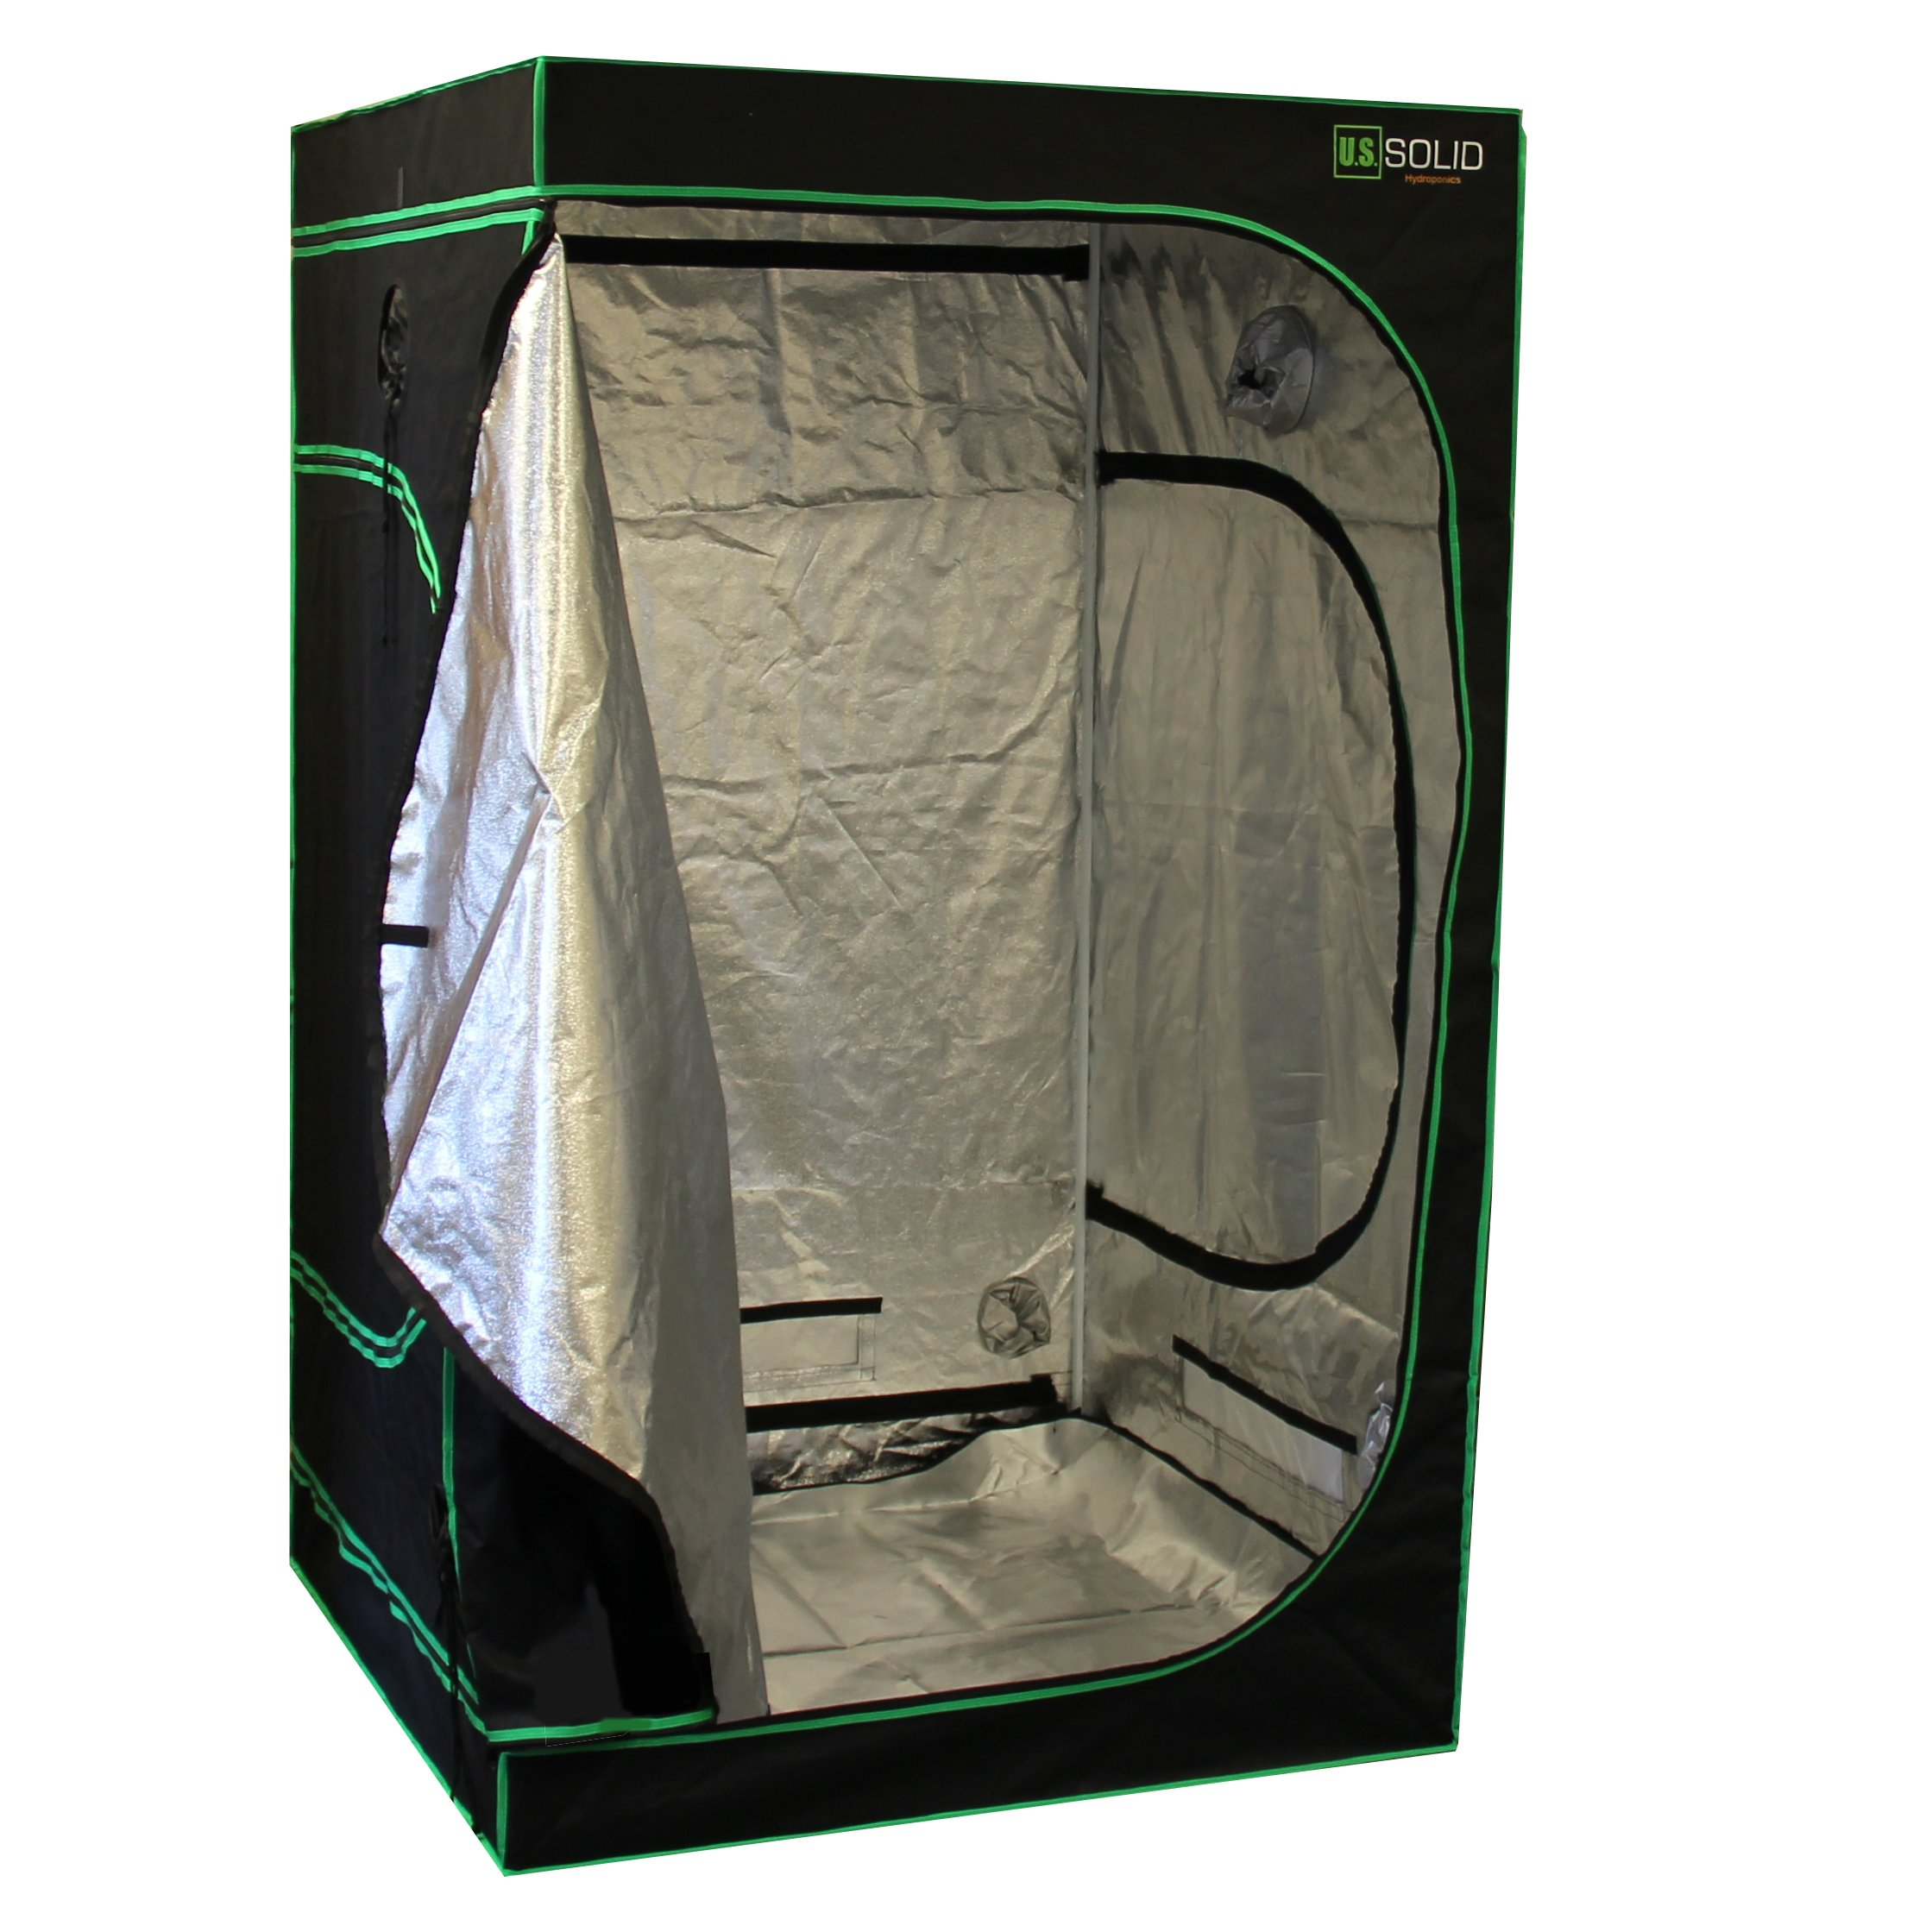 """U.S. Solid Grow Tent- 48""""x48""""x80"""" Hydroponic Grow Room Tent with High Strength Mylar Lined Fabric and a Strong Zipper, Keeps Odors from Getting Out and Pests from Getting in, a Product"""